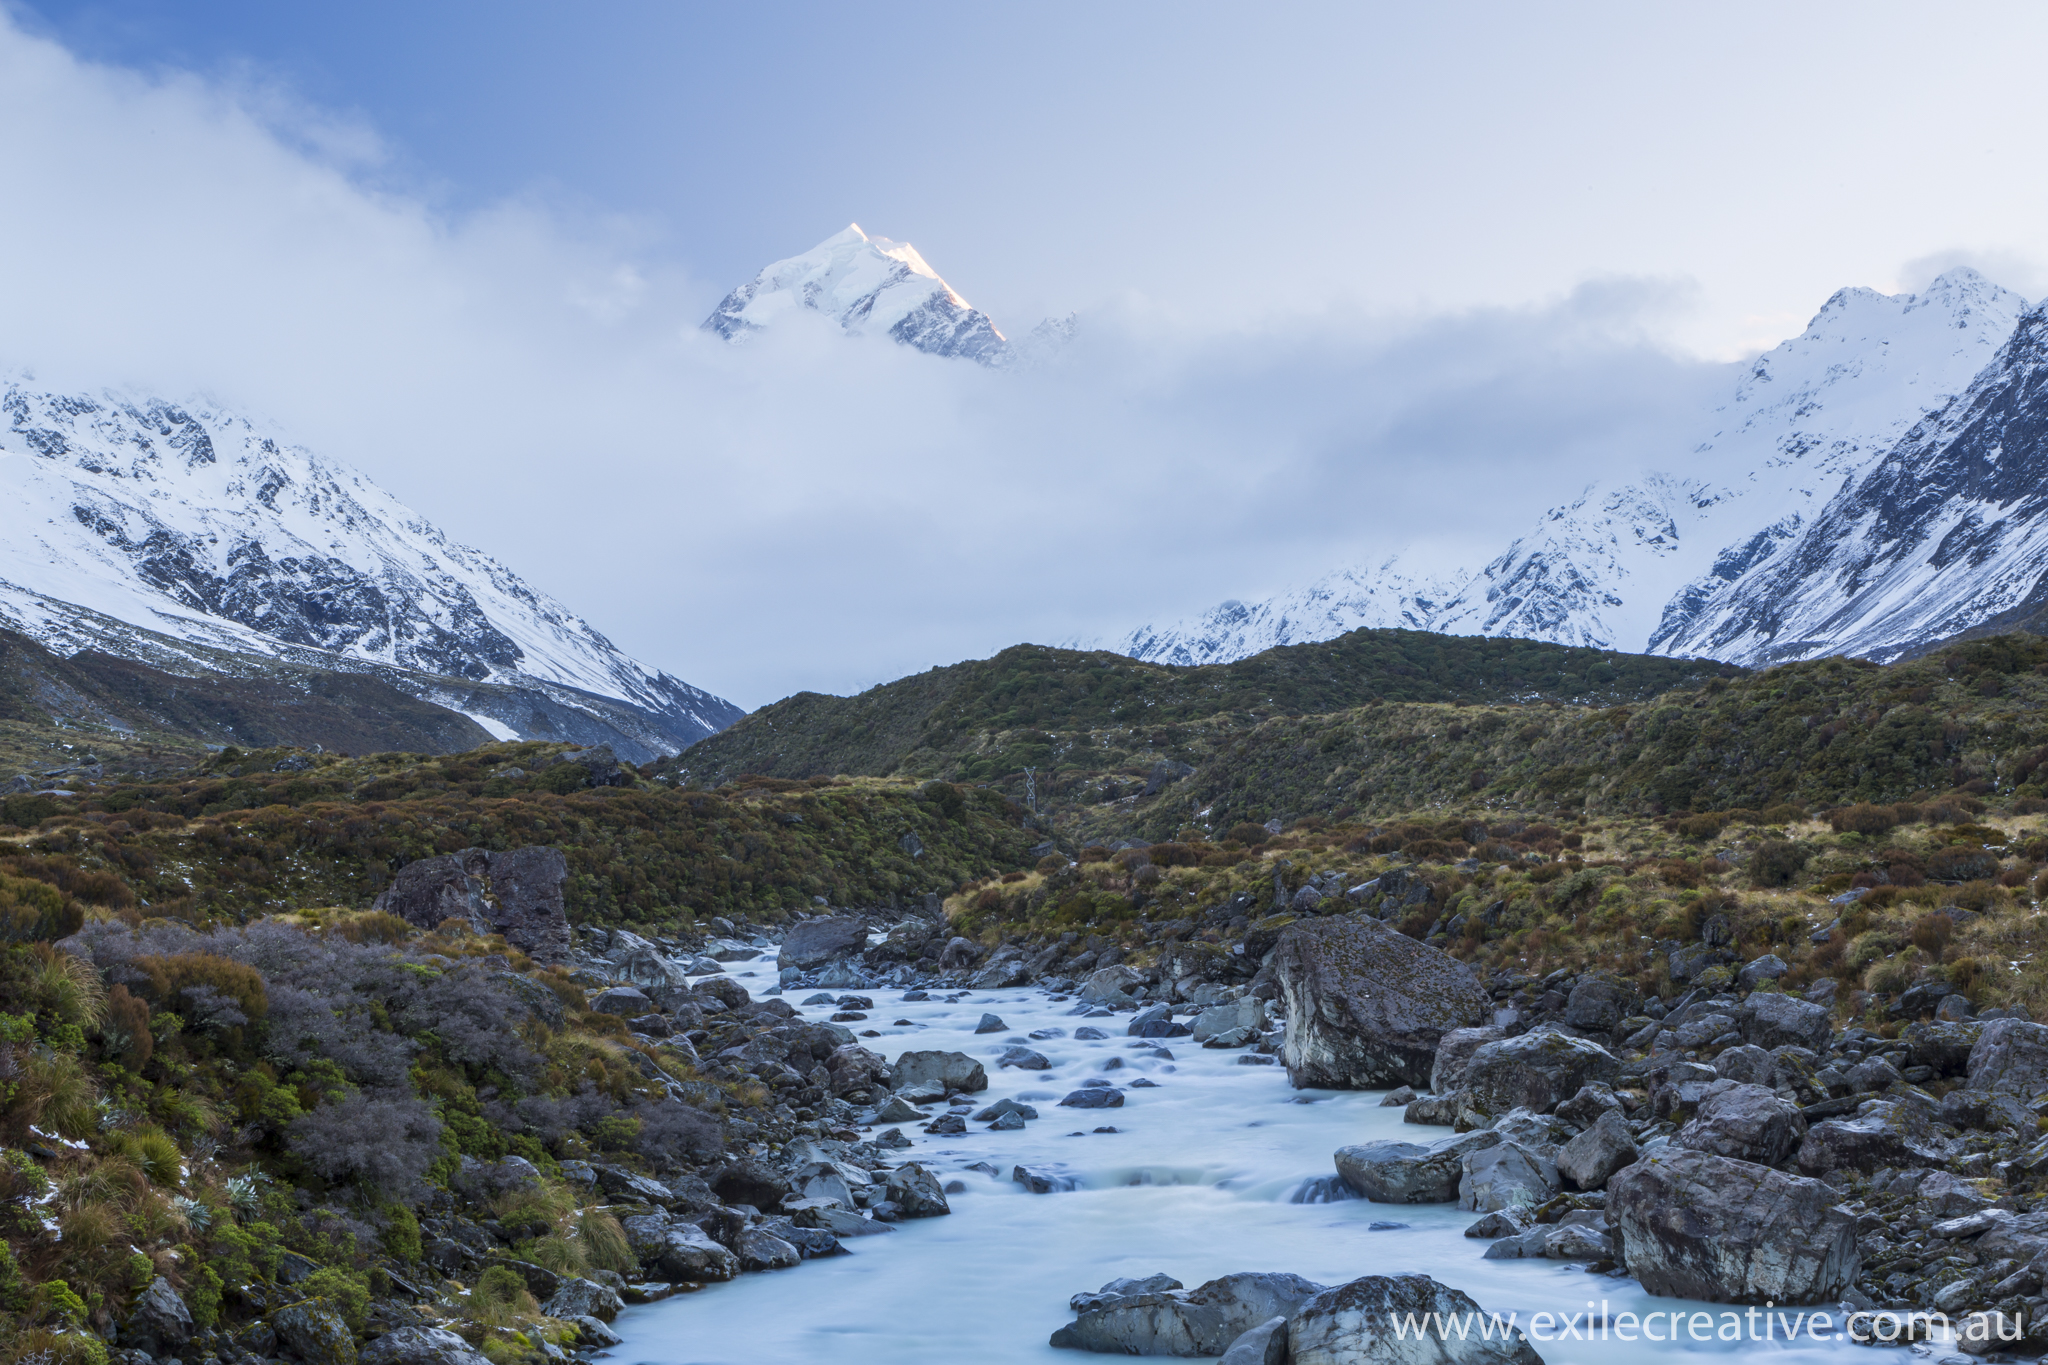 One of the few glimpses we got of Mt Cook this morning.  Canon 5Dmiii, 24-105L @ 47mm, ISO100, f/22, 4s with 0.6 Soft GND